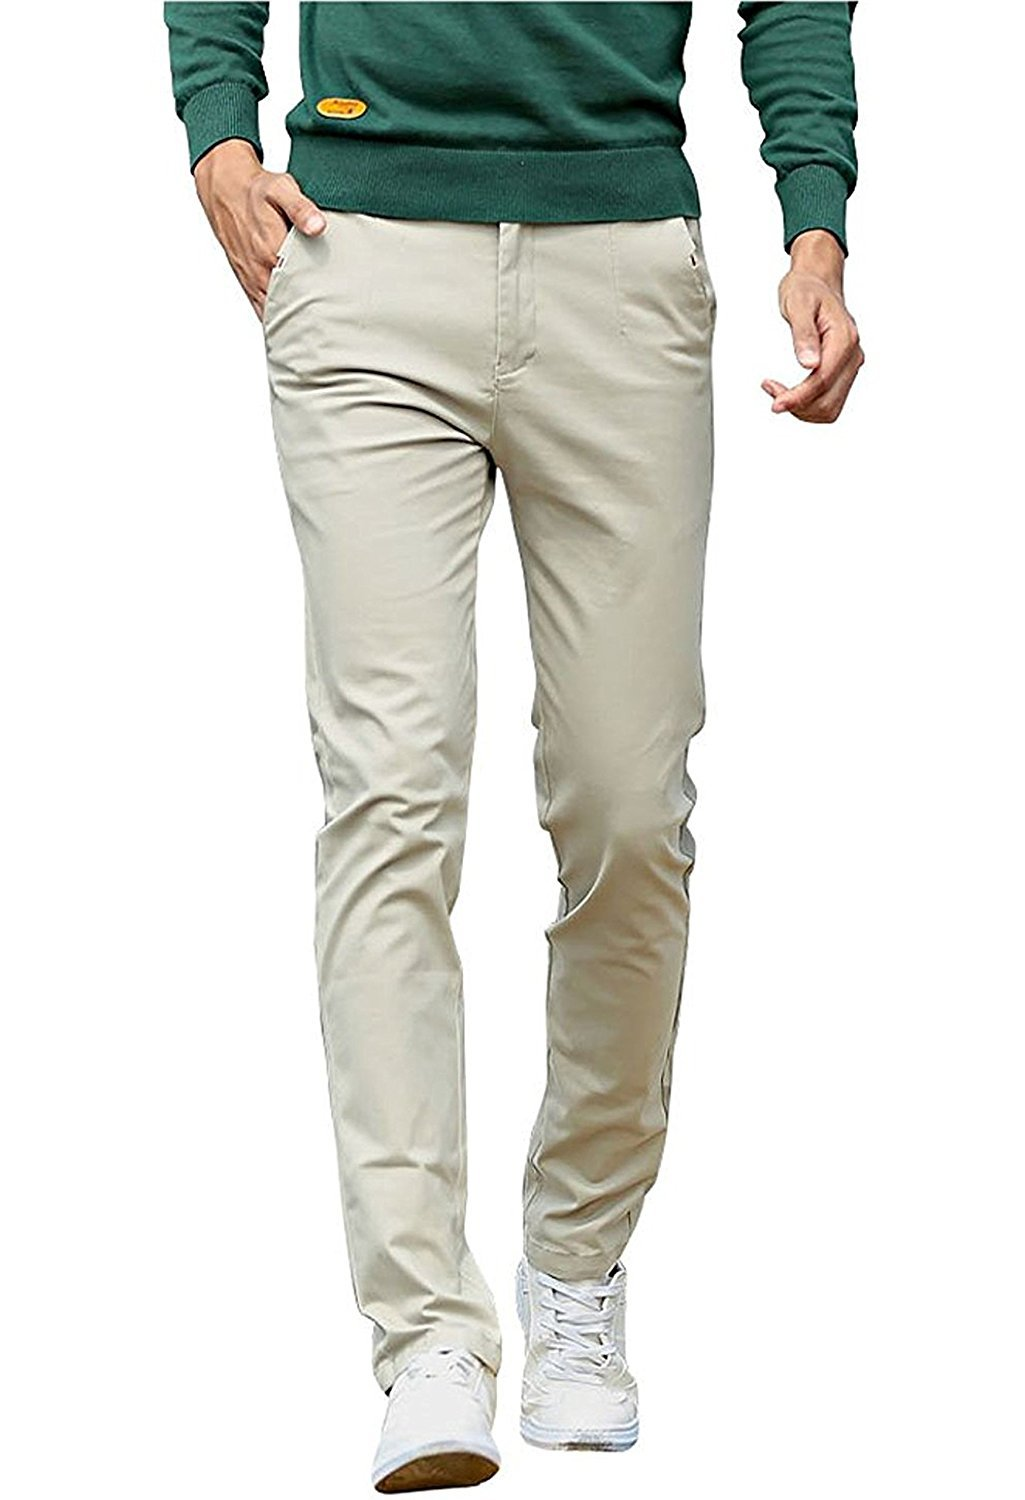 OUYIBA Men's Straight Skinny Casual Pants Stretchy Cotton Trousers (32, Khaki)